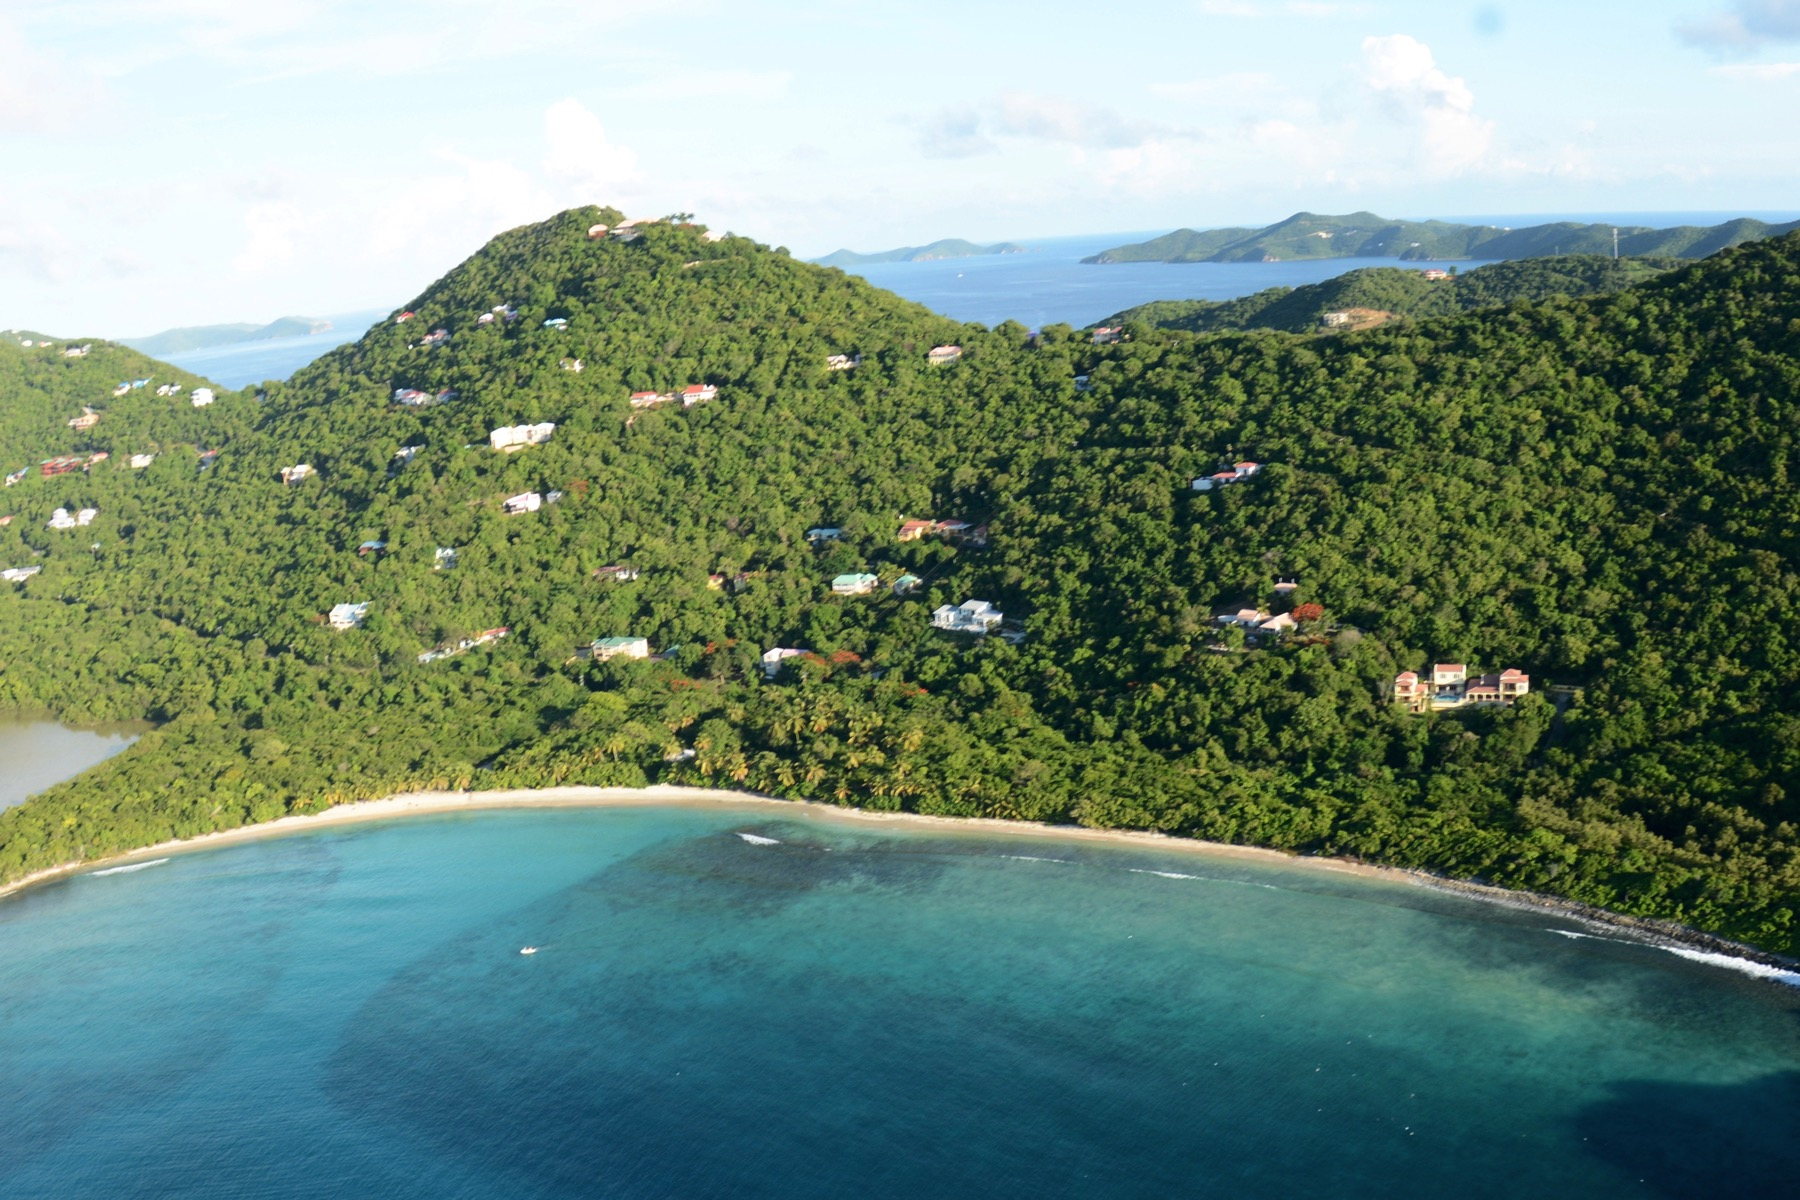 Land for Sale at Belmont Land 127 Belmont, Tortola British Virgin Islands